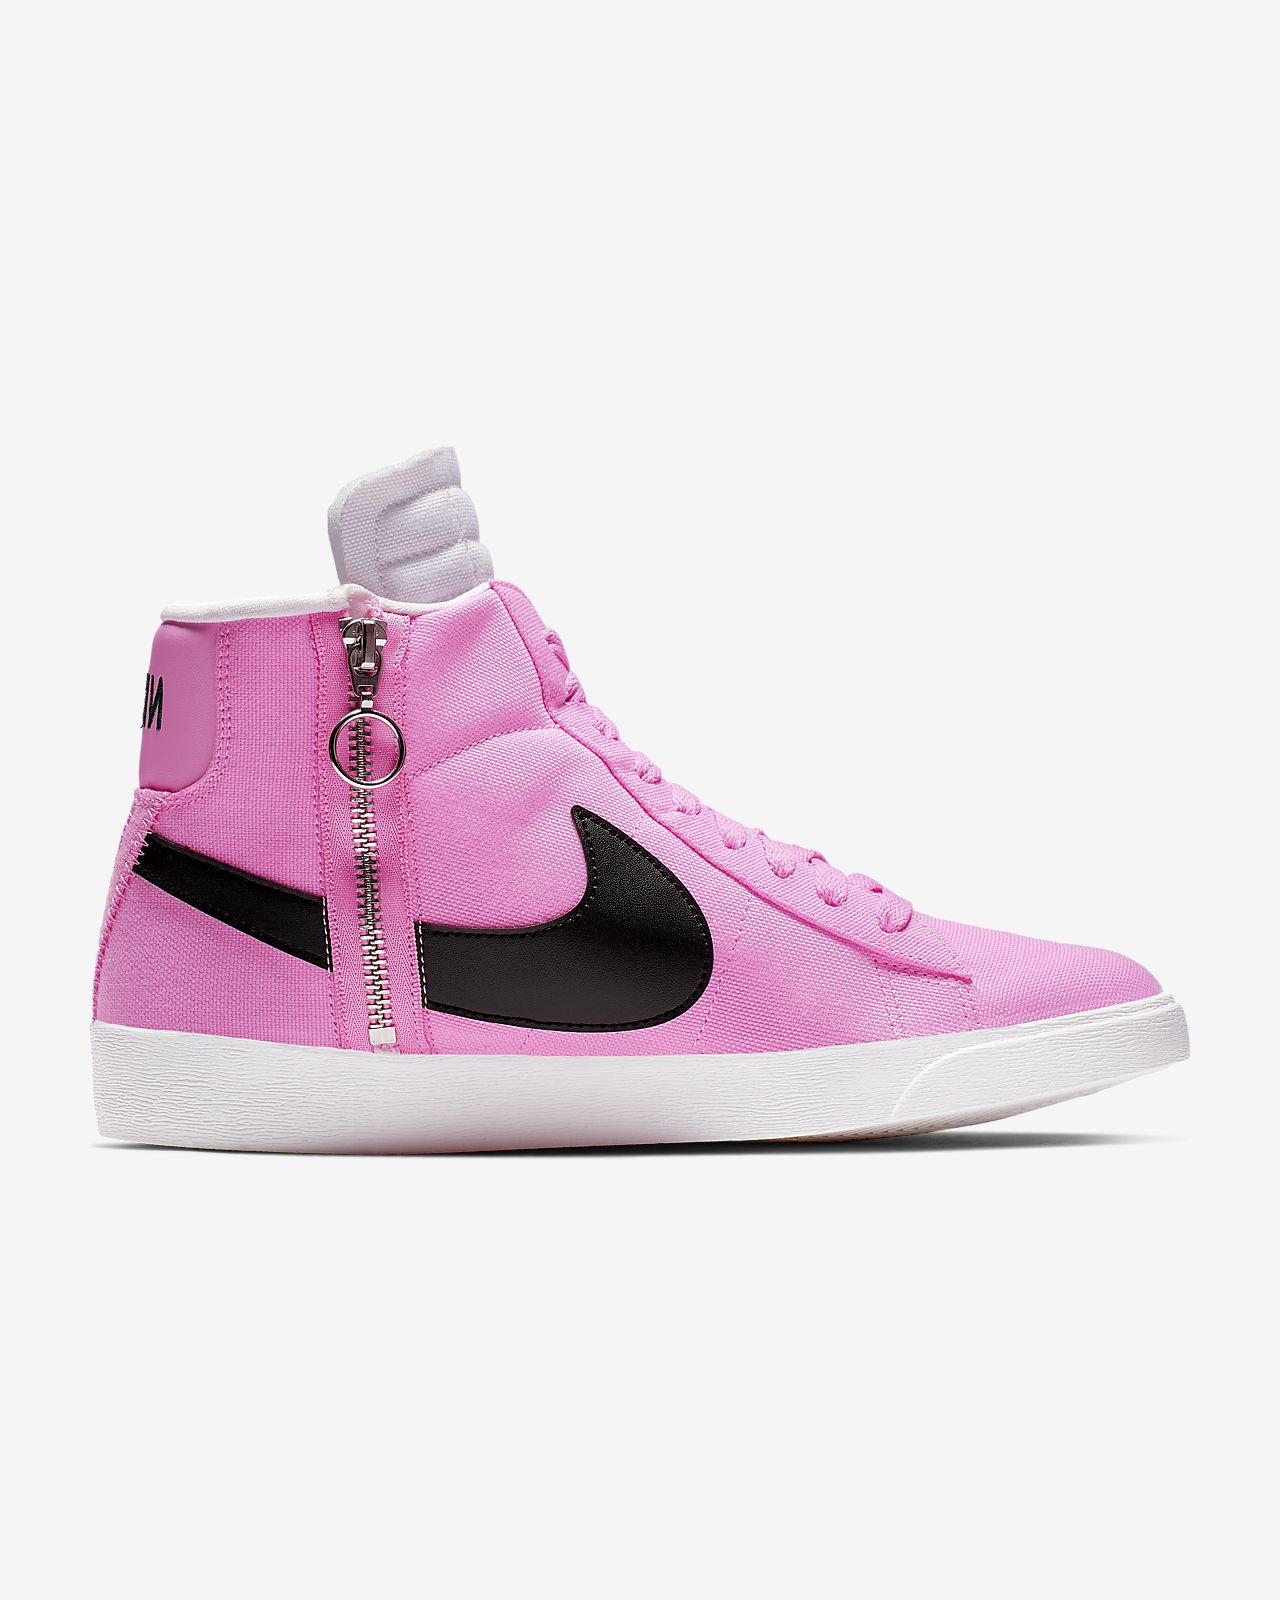 best sneakers 547e6 a25e8 ... Chaussure Nike Blazer Mid Rebel pour Femme